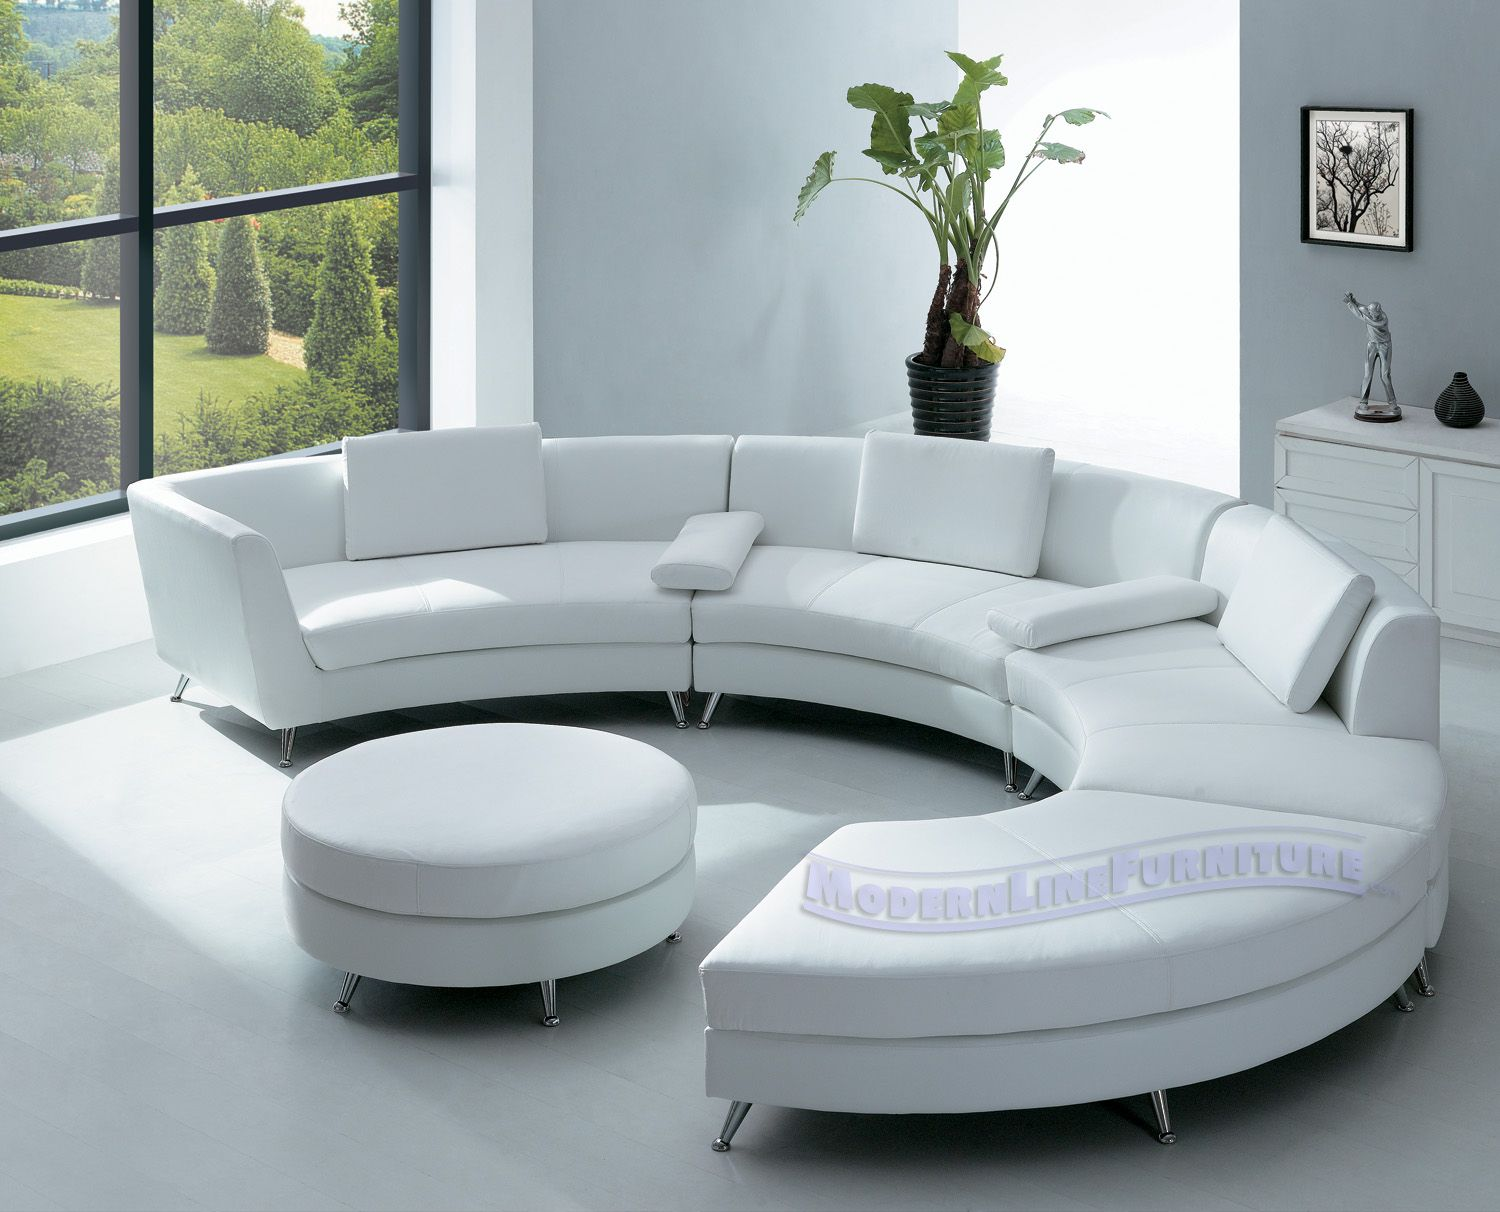 Modern Furniture Rooms best 25+ elegant sofa ideas on pinterest | sofa uk, chaise lounges